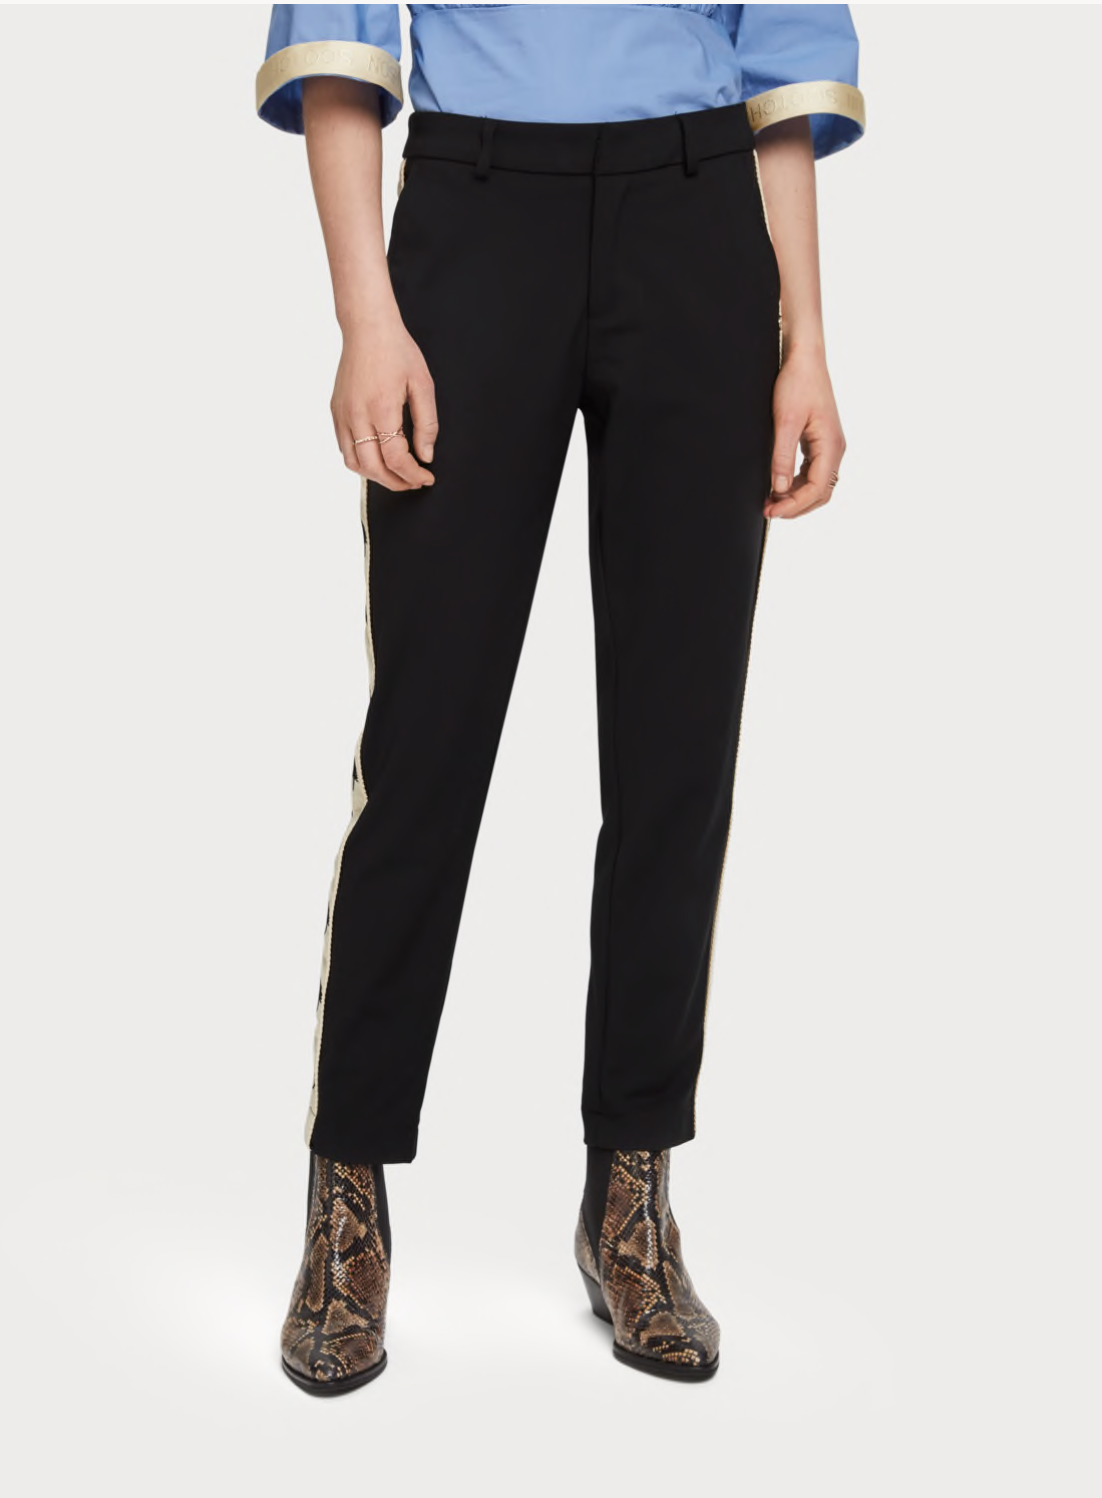 (New) Tailored Pants with Embroidered Side Panel